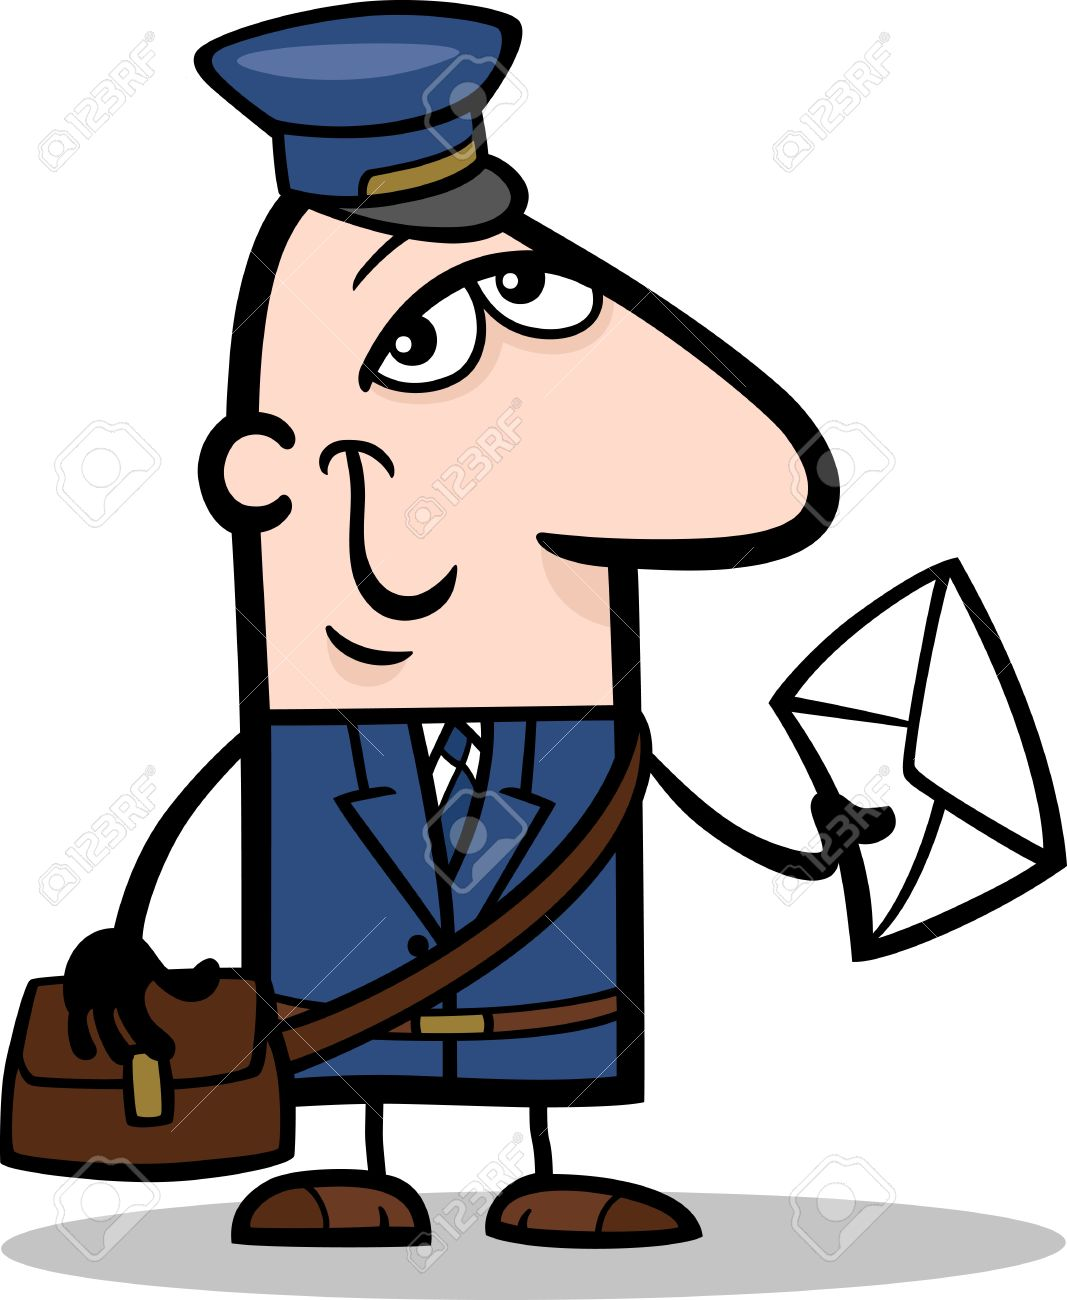 Cartoon Illustration of Funny Postman with Letter Profession Occupation Stock Vector - 18765056